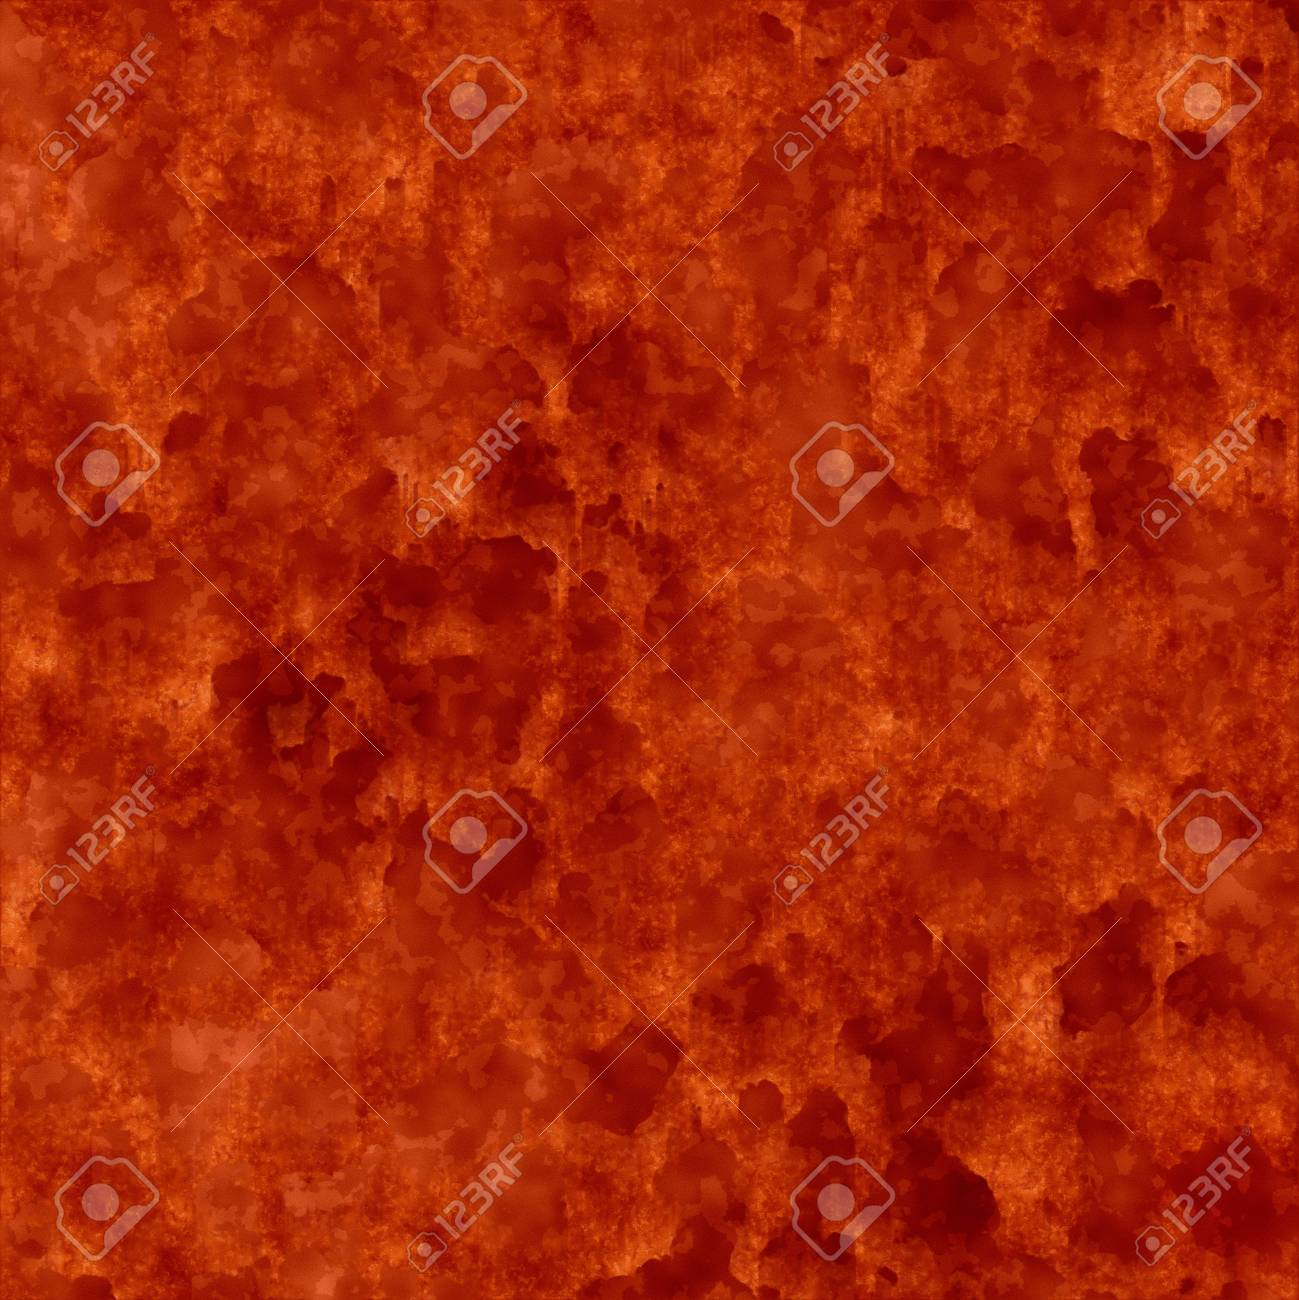 illustration of bright rusty background Stock Photo - 13002960